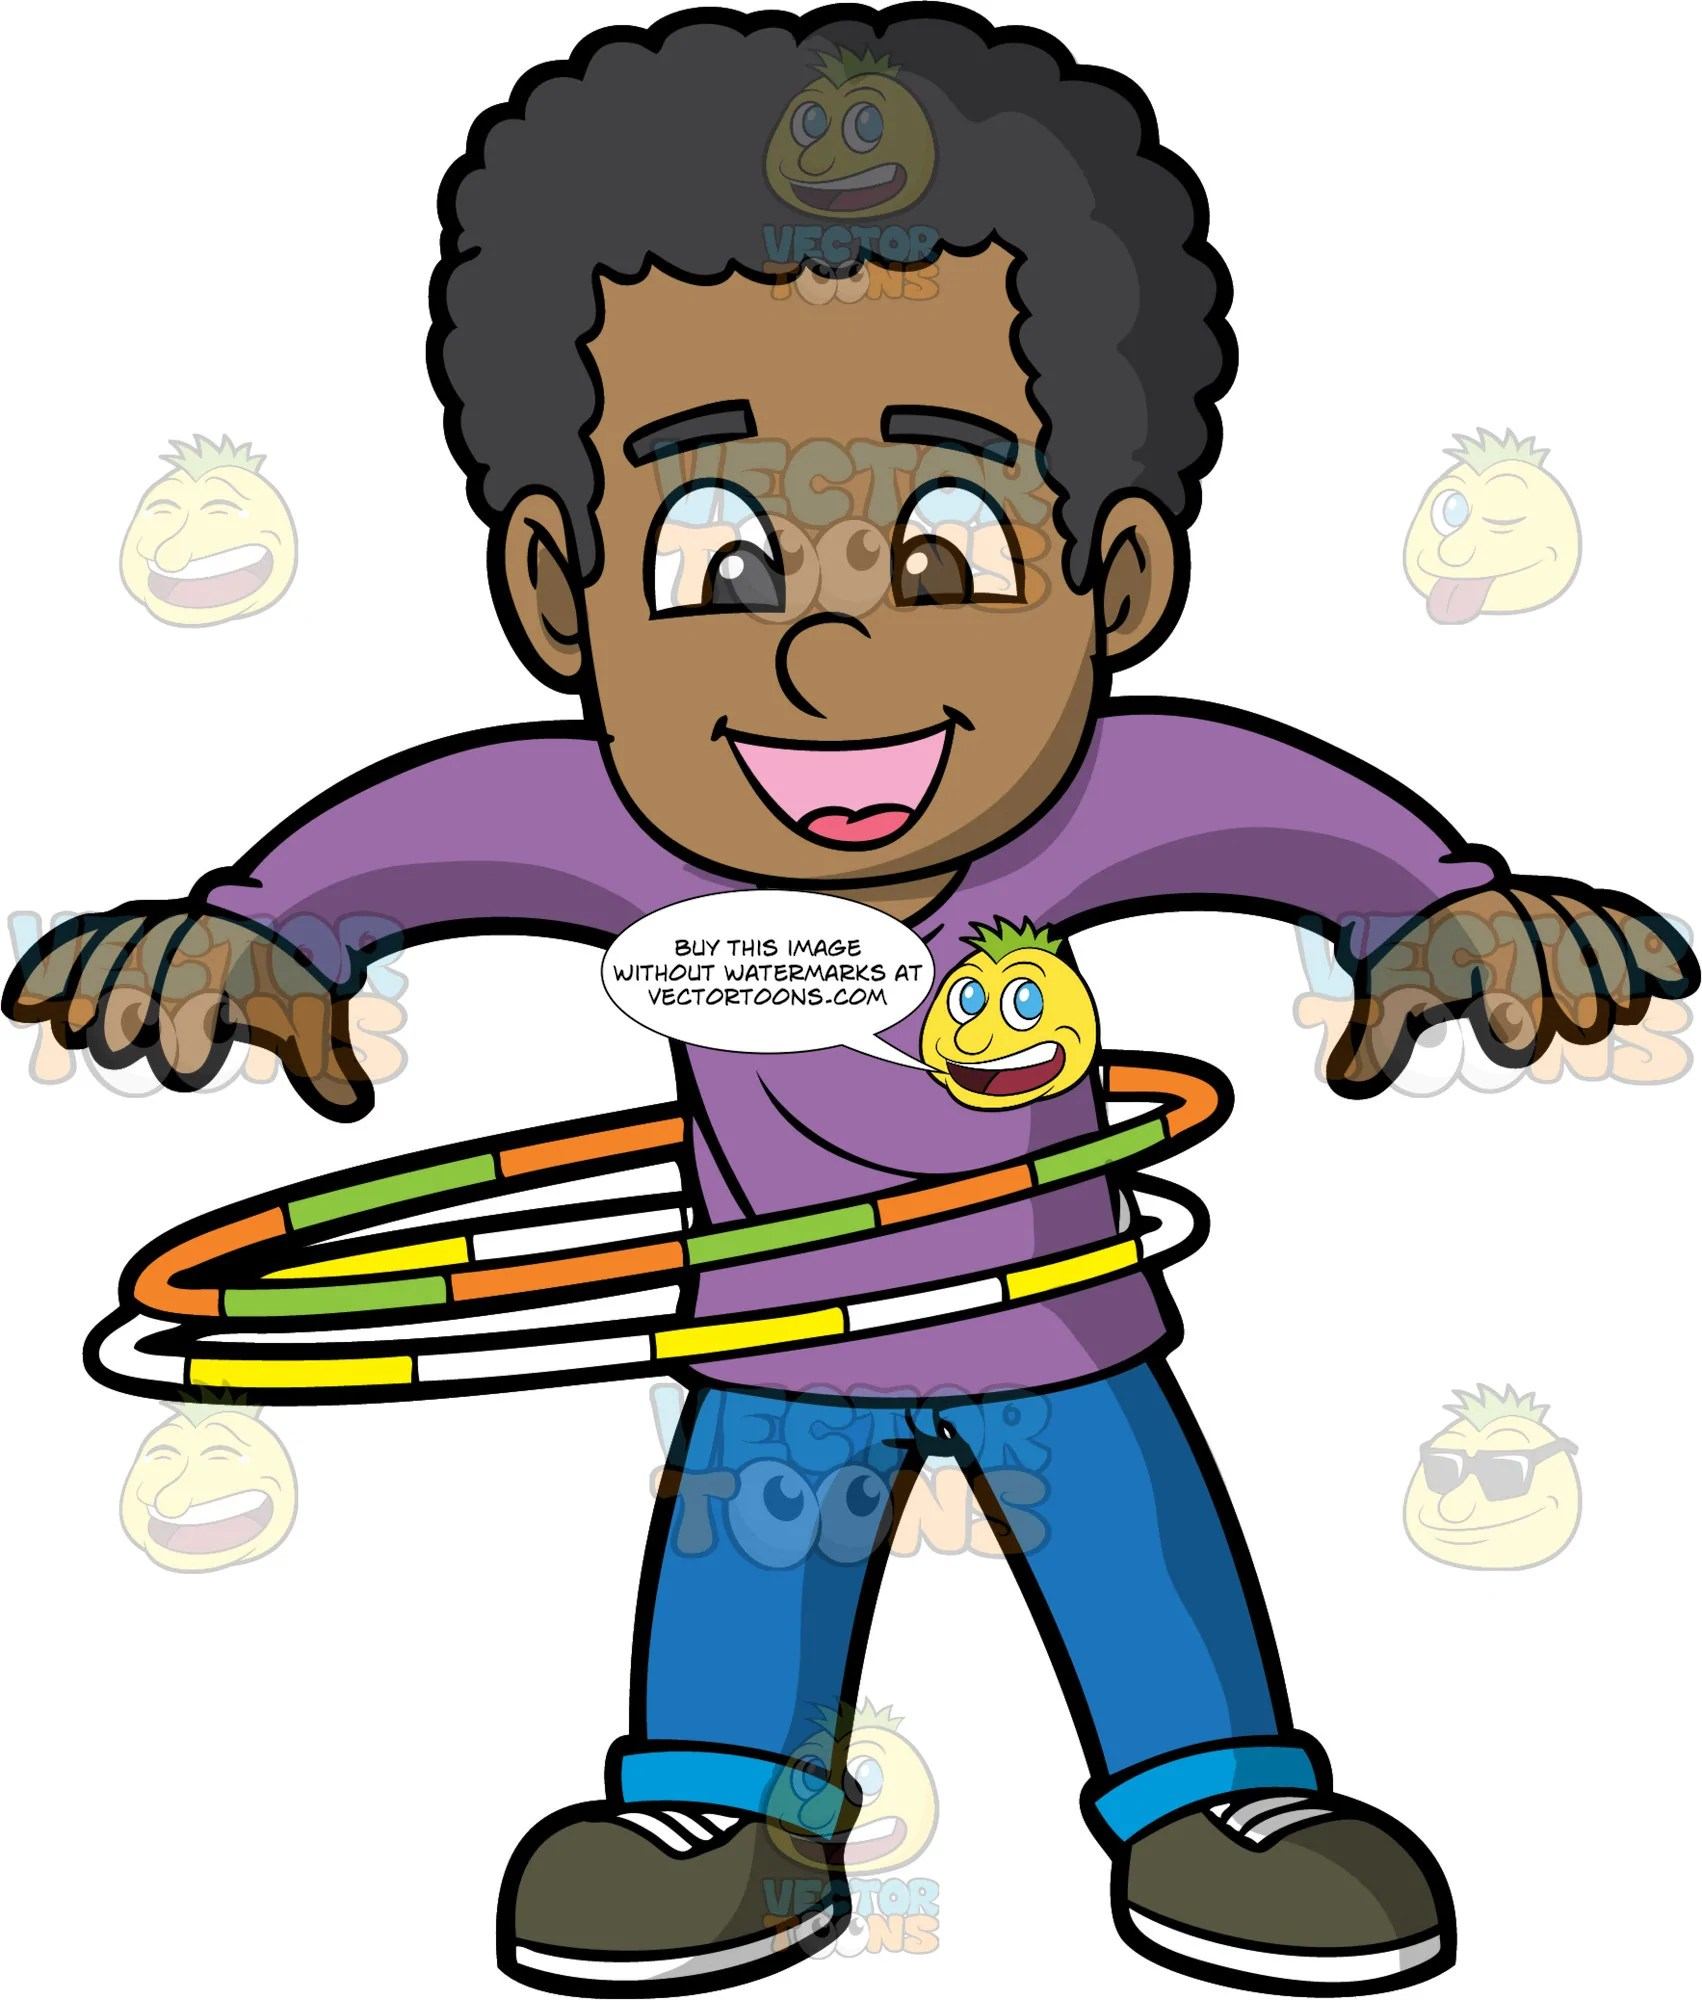 medium resolution of a black boy spinning two hula hoops a black boy with curly hair wearing